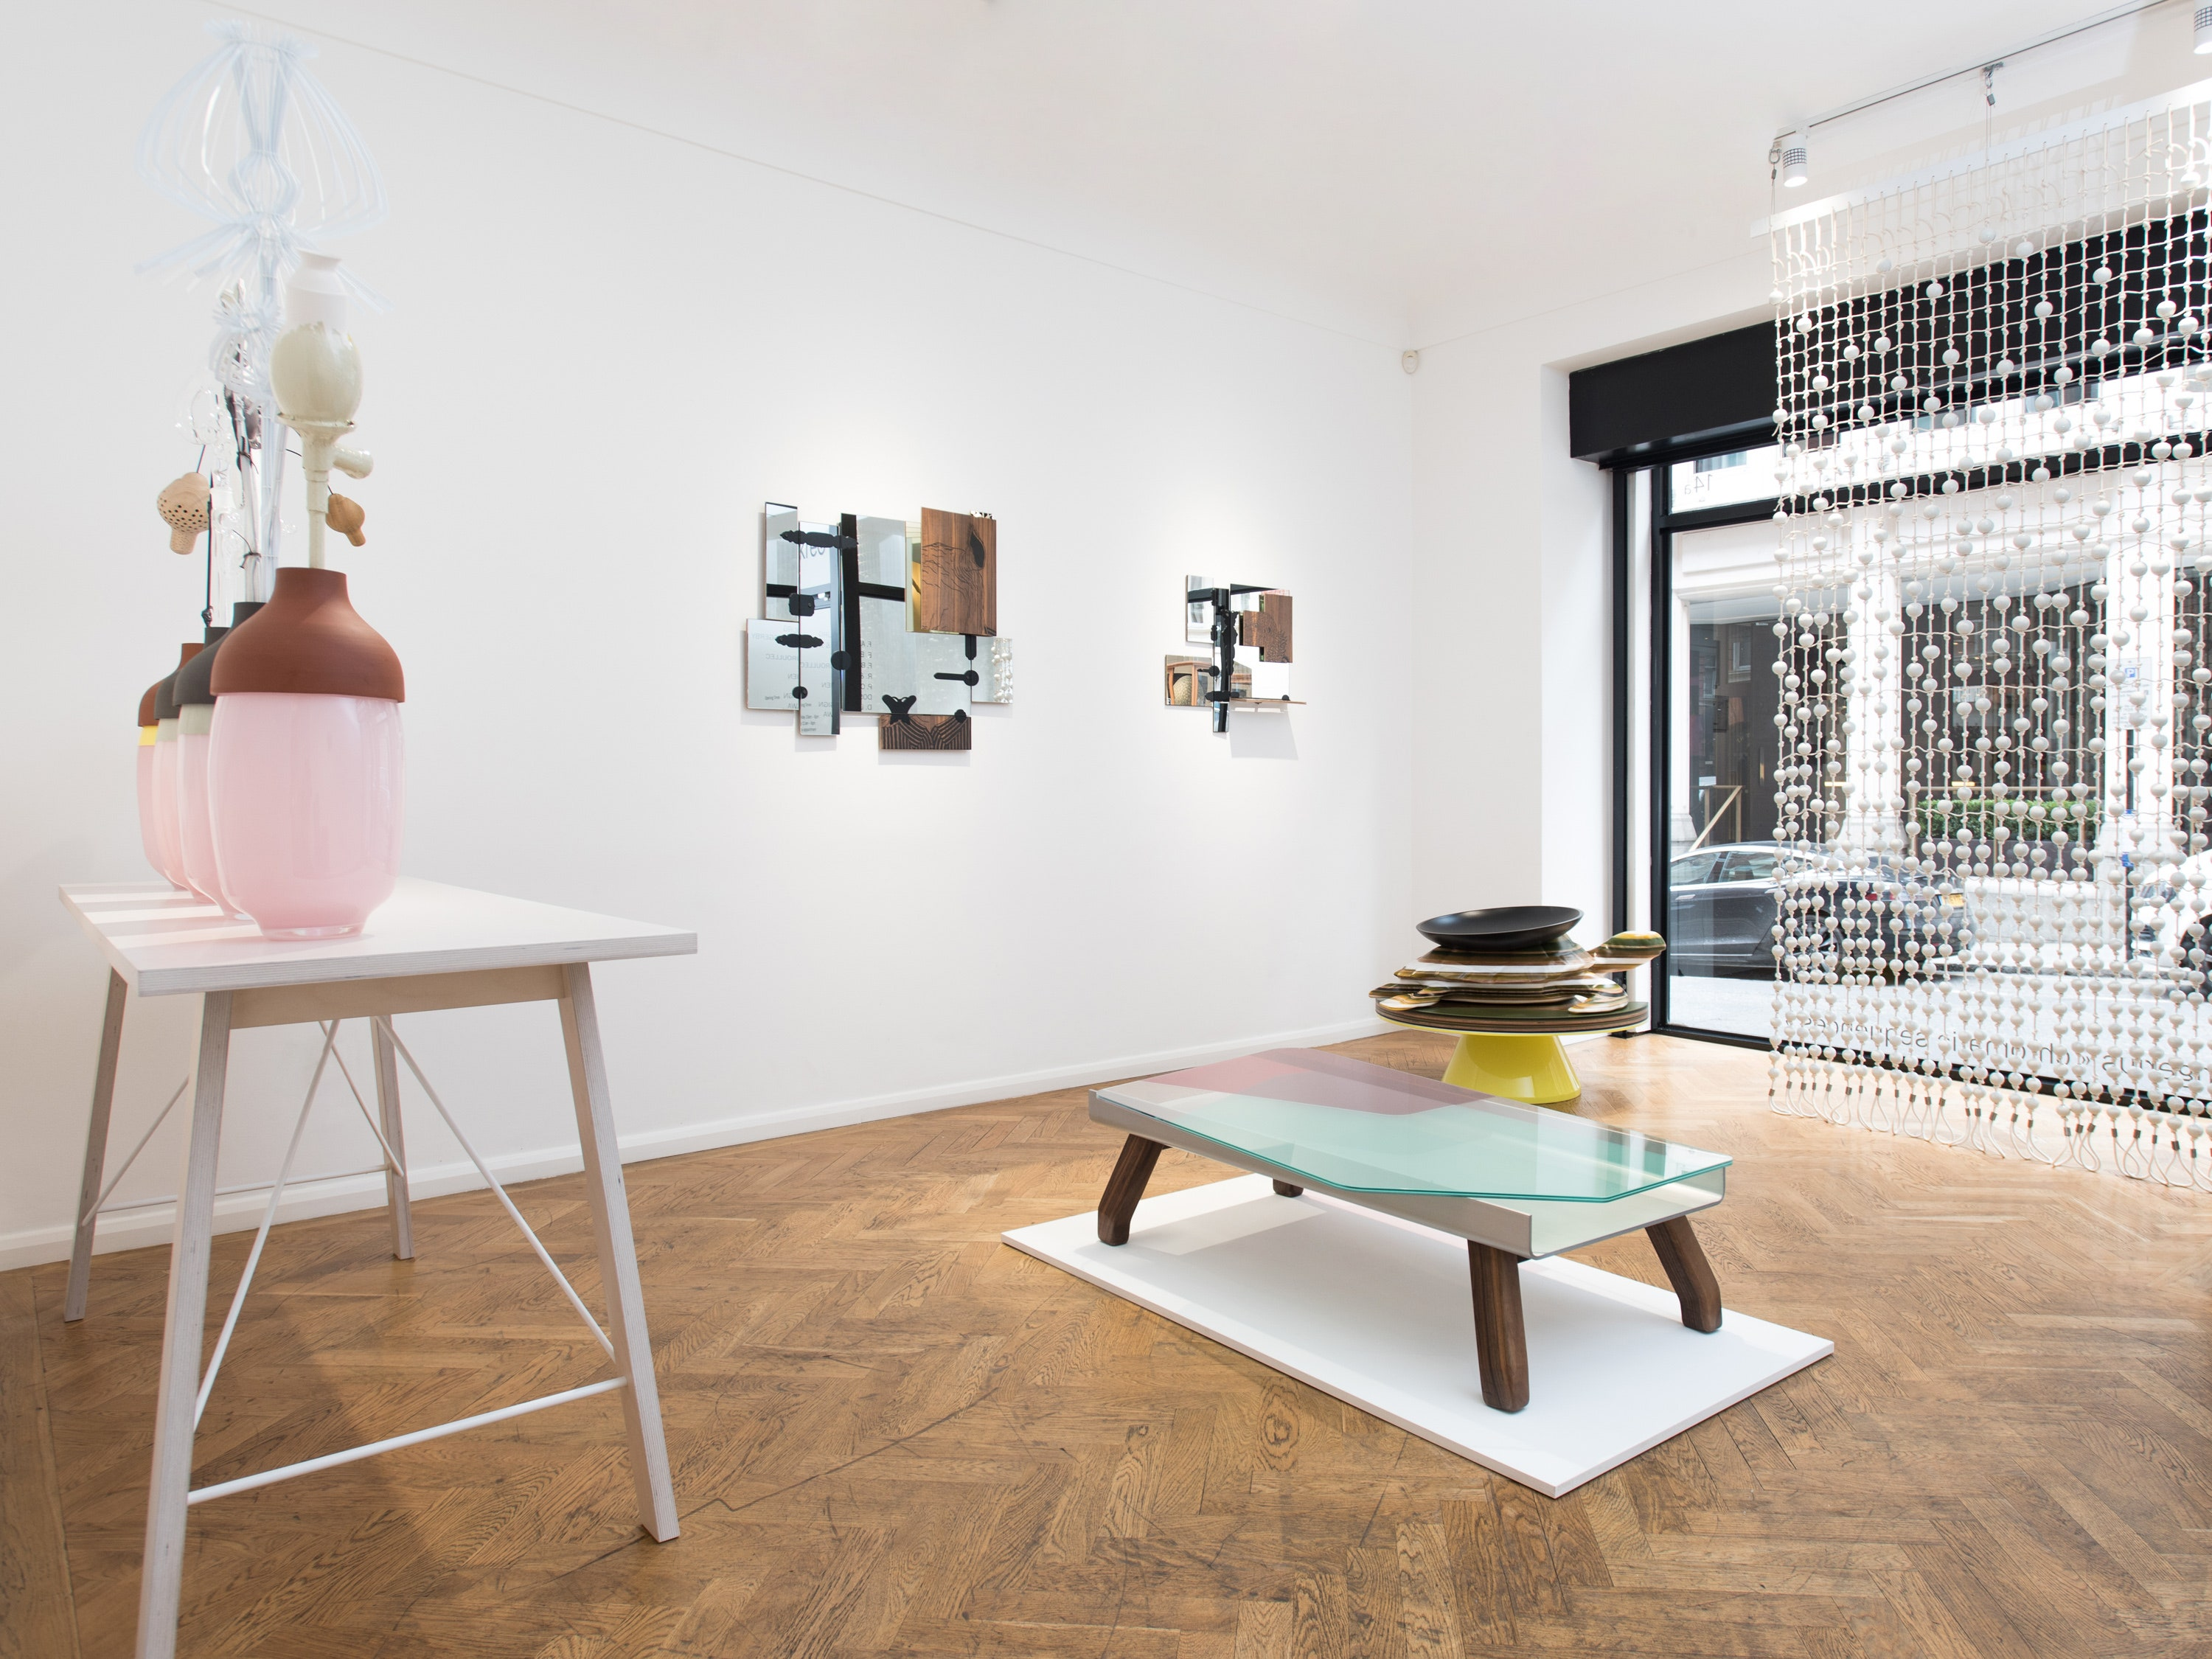 Be Inspired By The Wonders Of These Contemporary Art Galleries art galleries Be Inspired By The Wonders Of These Contemporary Art Galleries Galerie Kreo